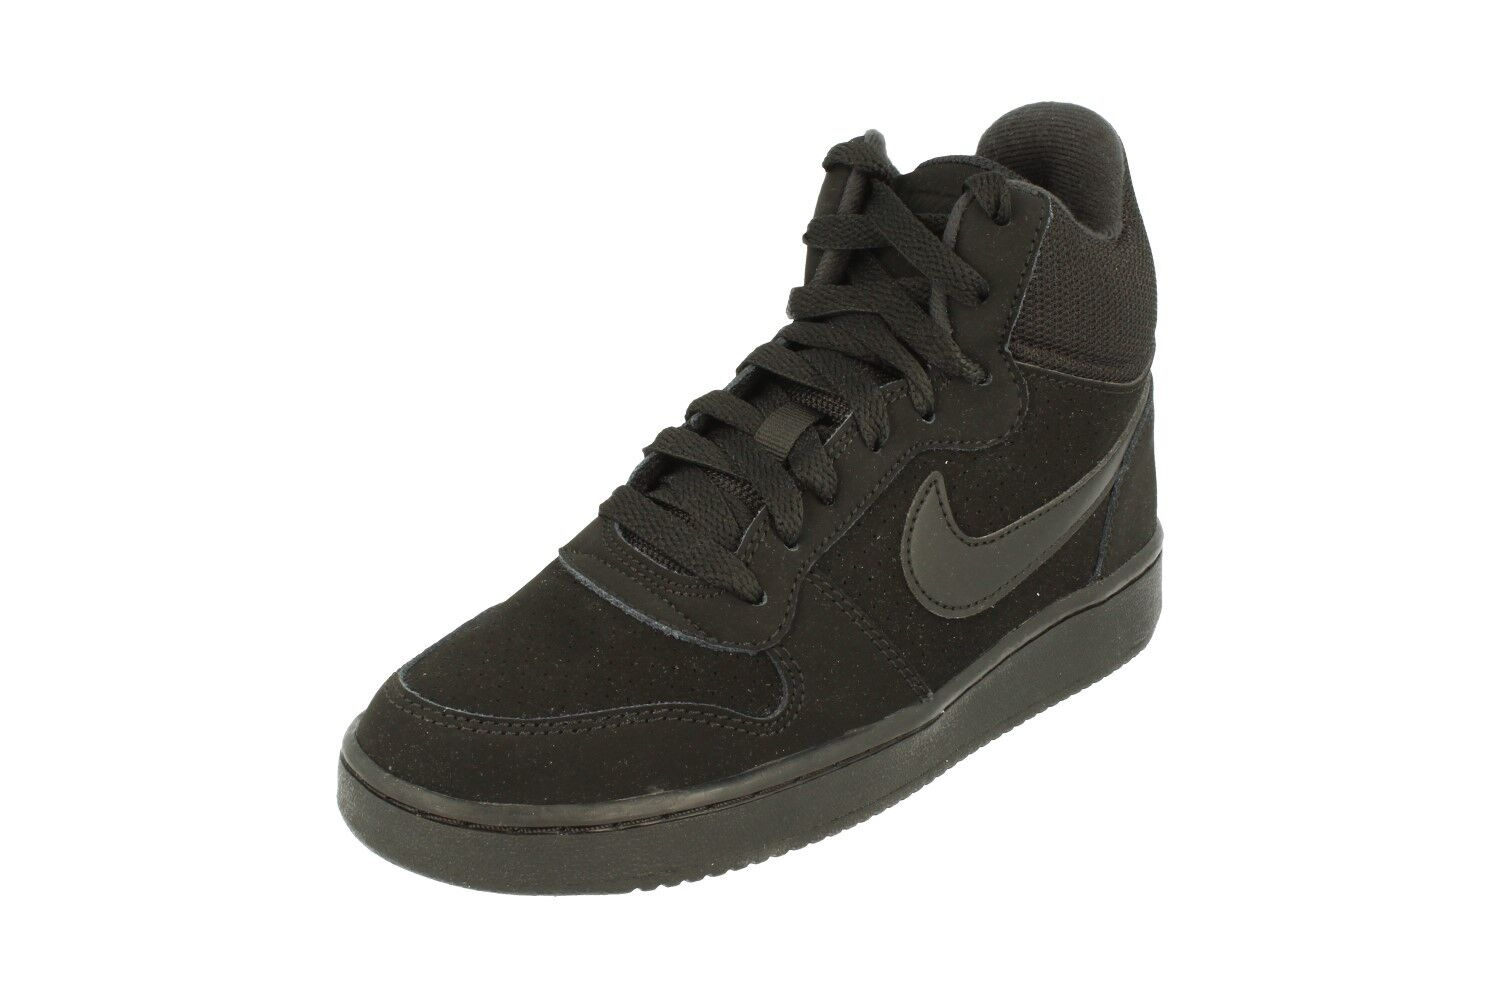 Nike Womens Court Bgoldugh Mid Trainers 844906 Sneakers shoes 002